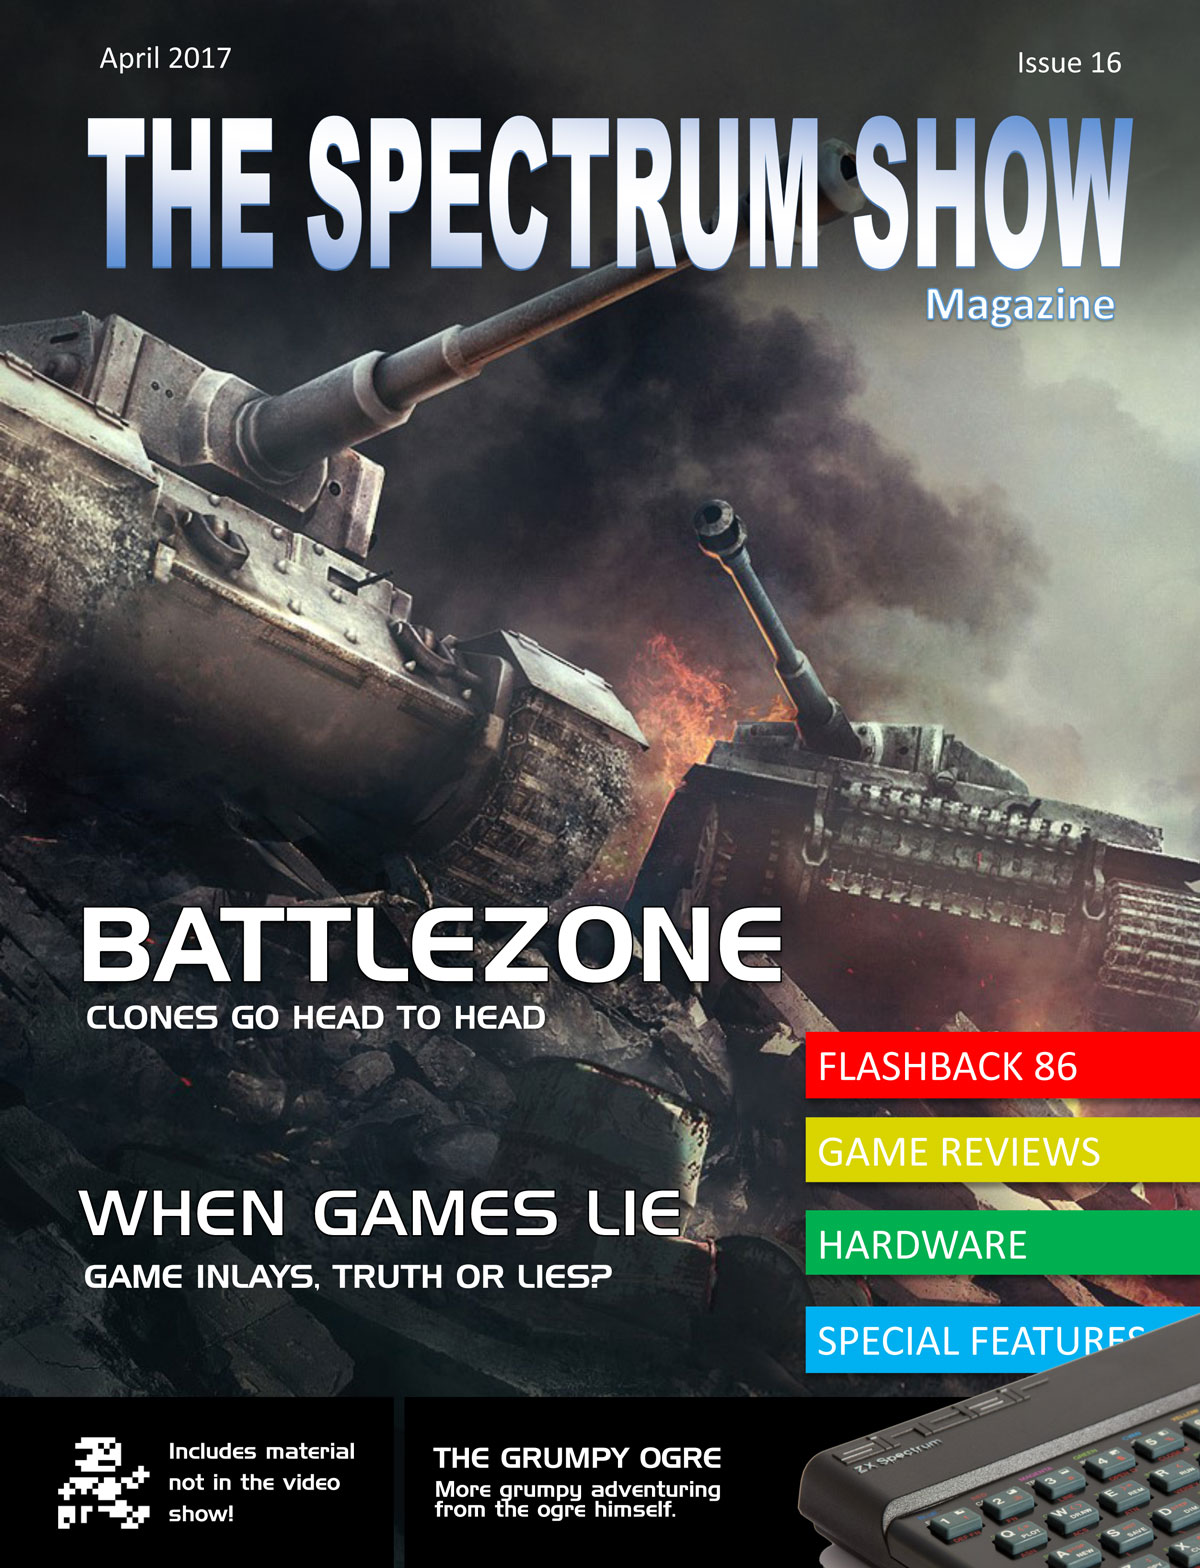 The Spectrum Show Magazine no 16